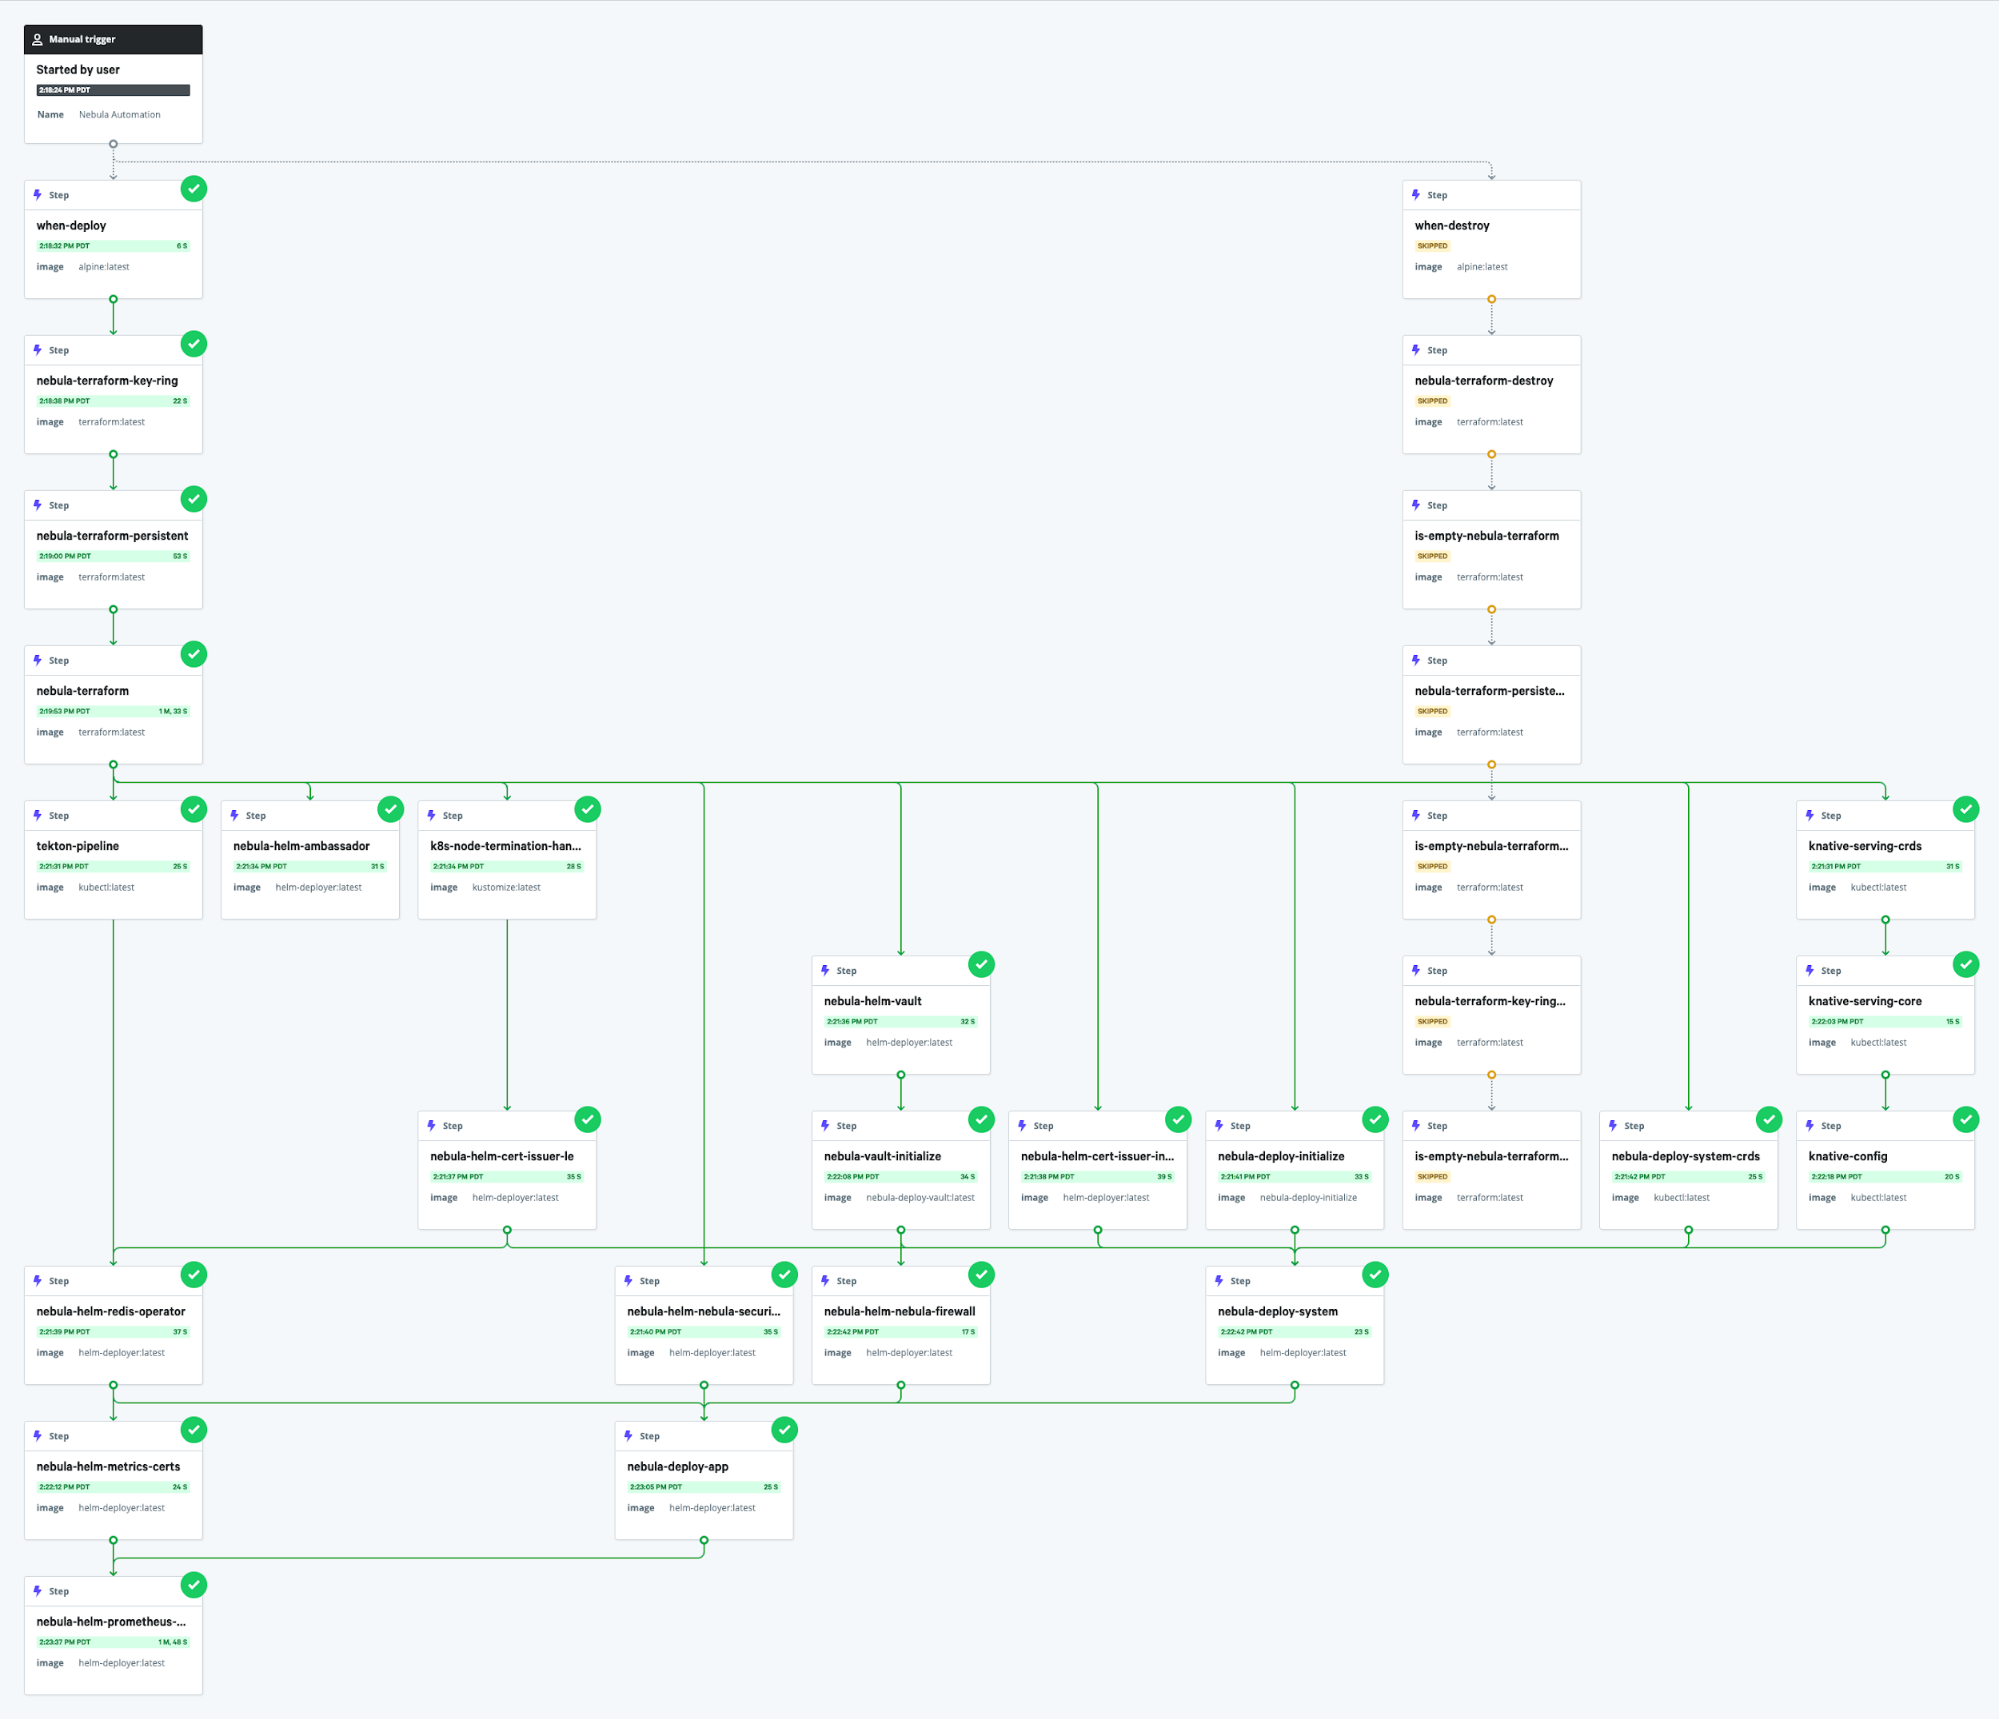 A more complex workflow graph